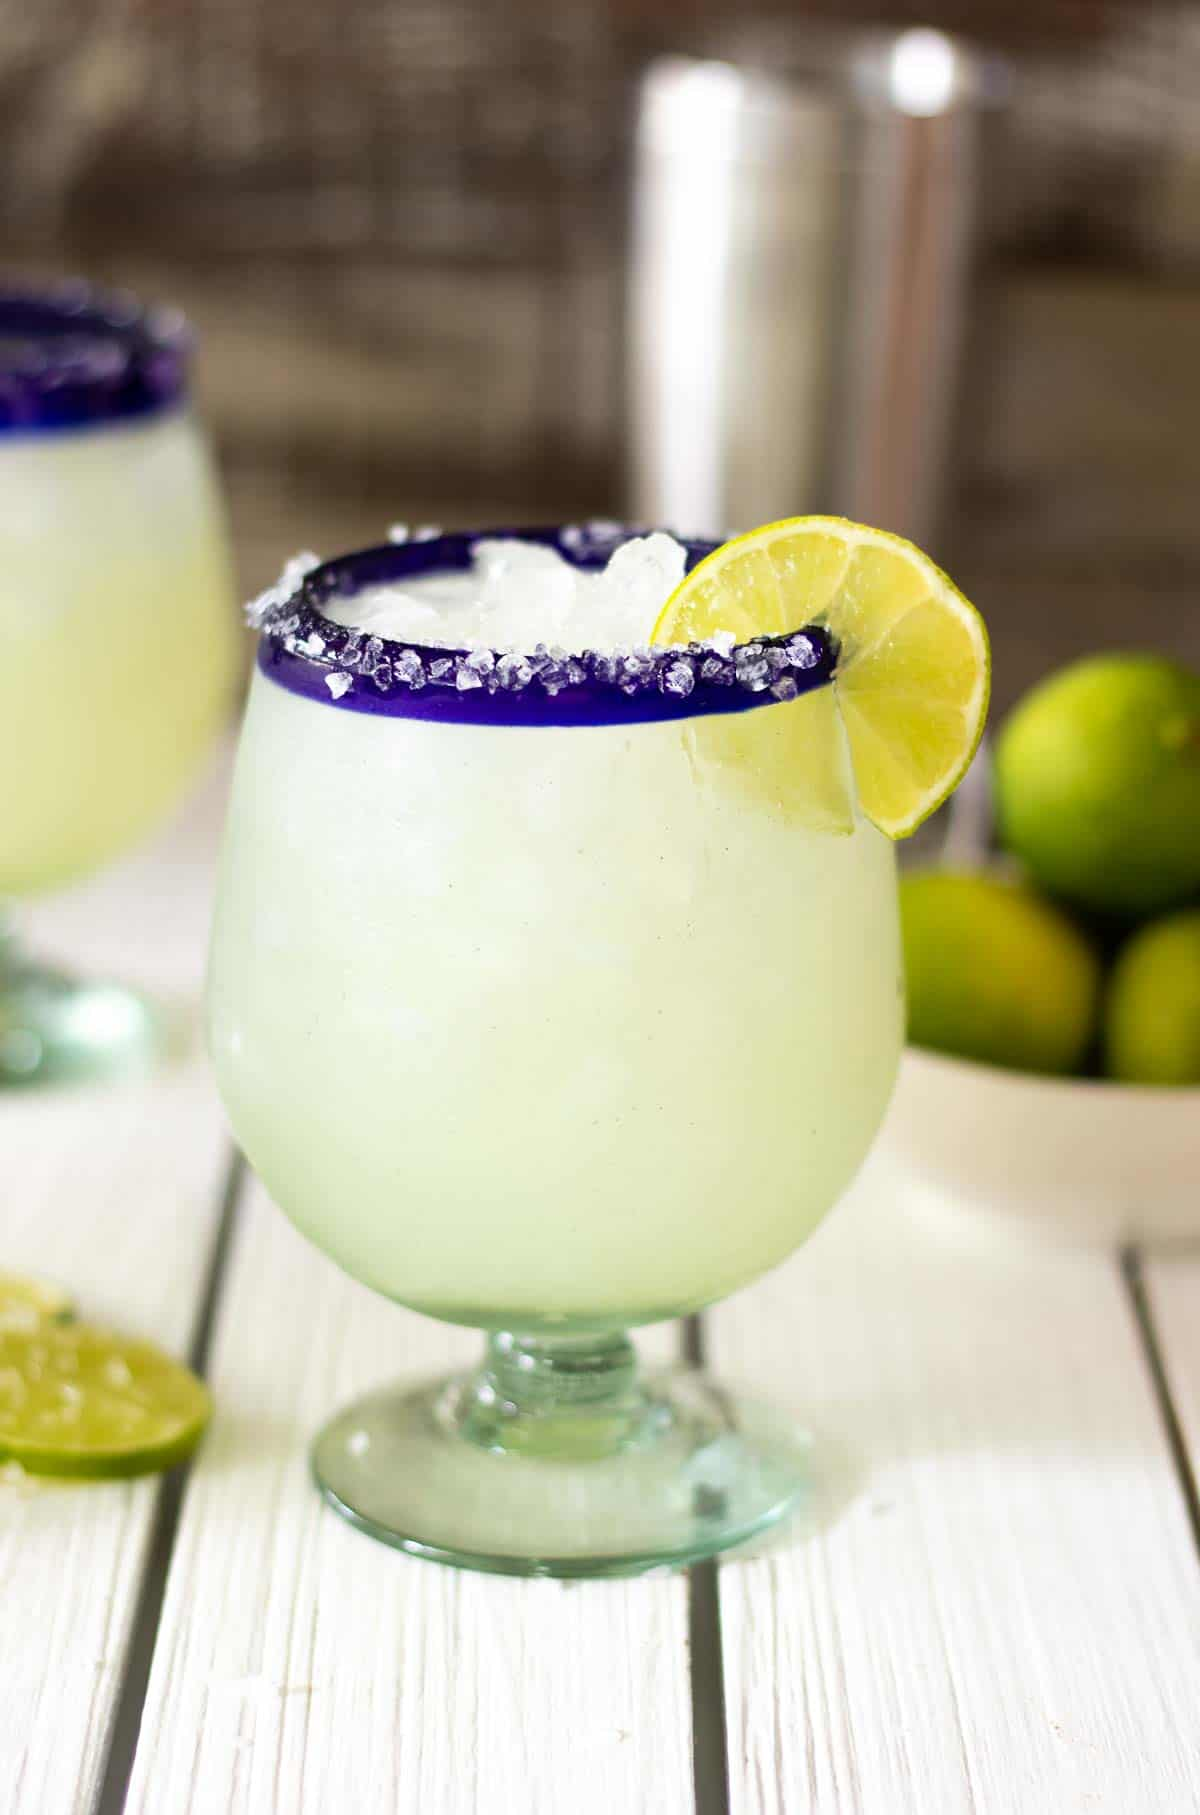 Classic margarita on table with lime slice.